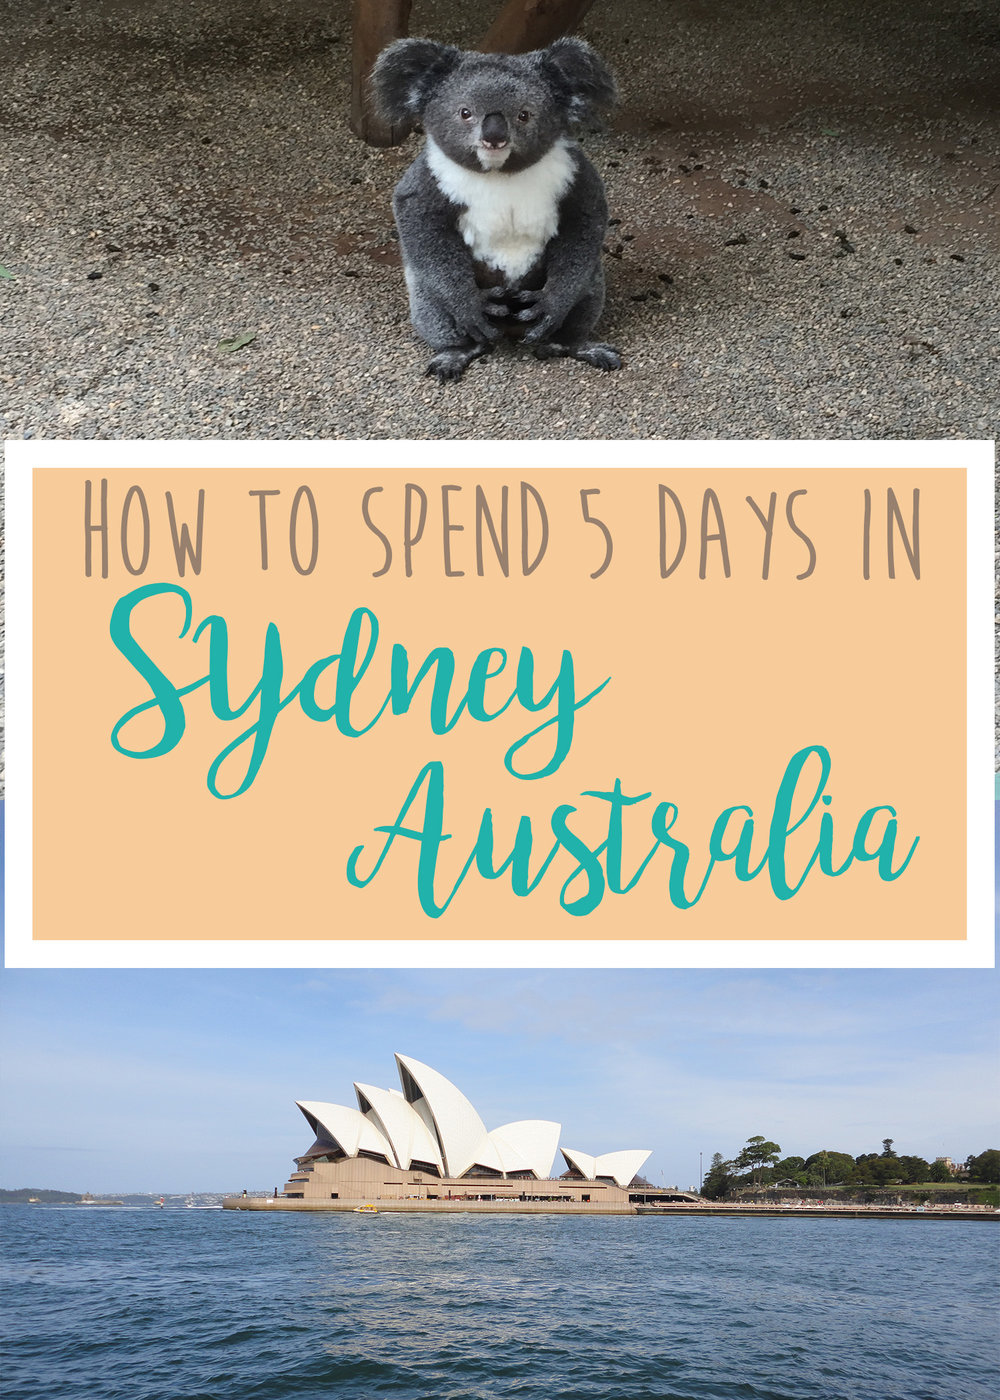 How to Spend 5 Days in Sydney Australia - Wandering Jokas Travel Blog